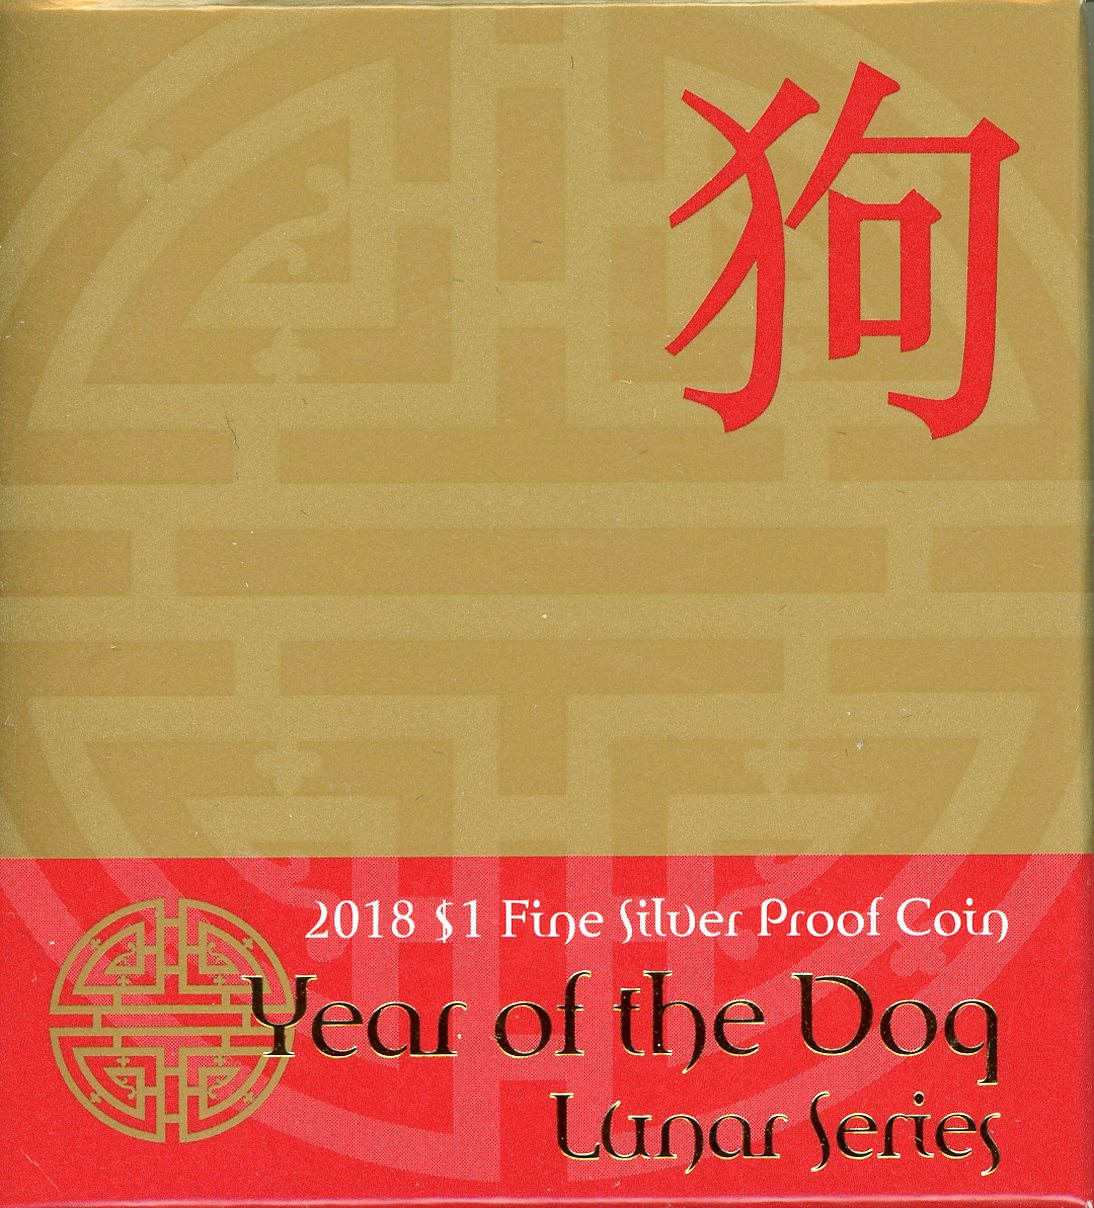 Thumbnail for 2018 Lunar Series - Year of the Dog $1 Silver Proof Coin